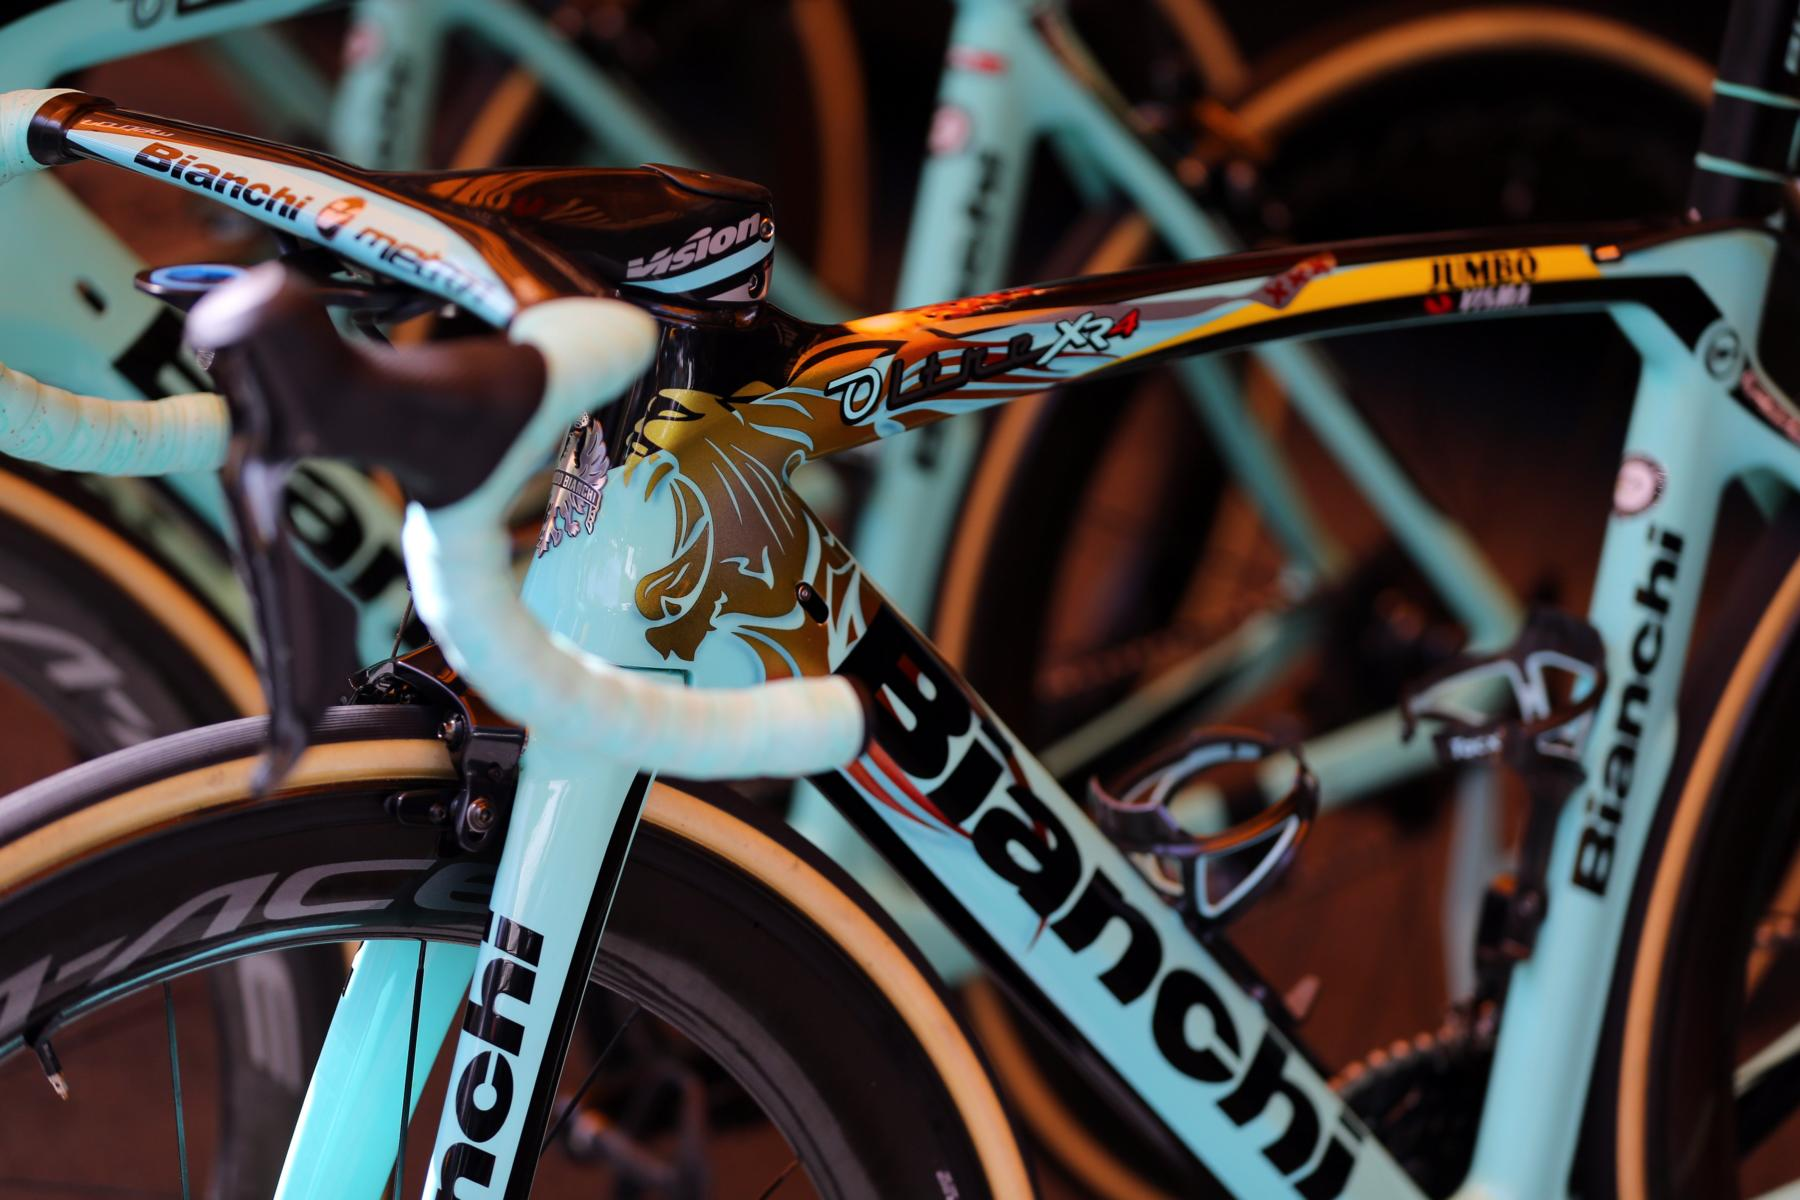 Professional and Teambikes